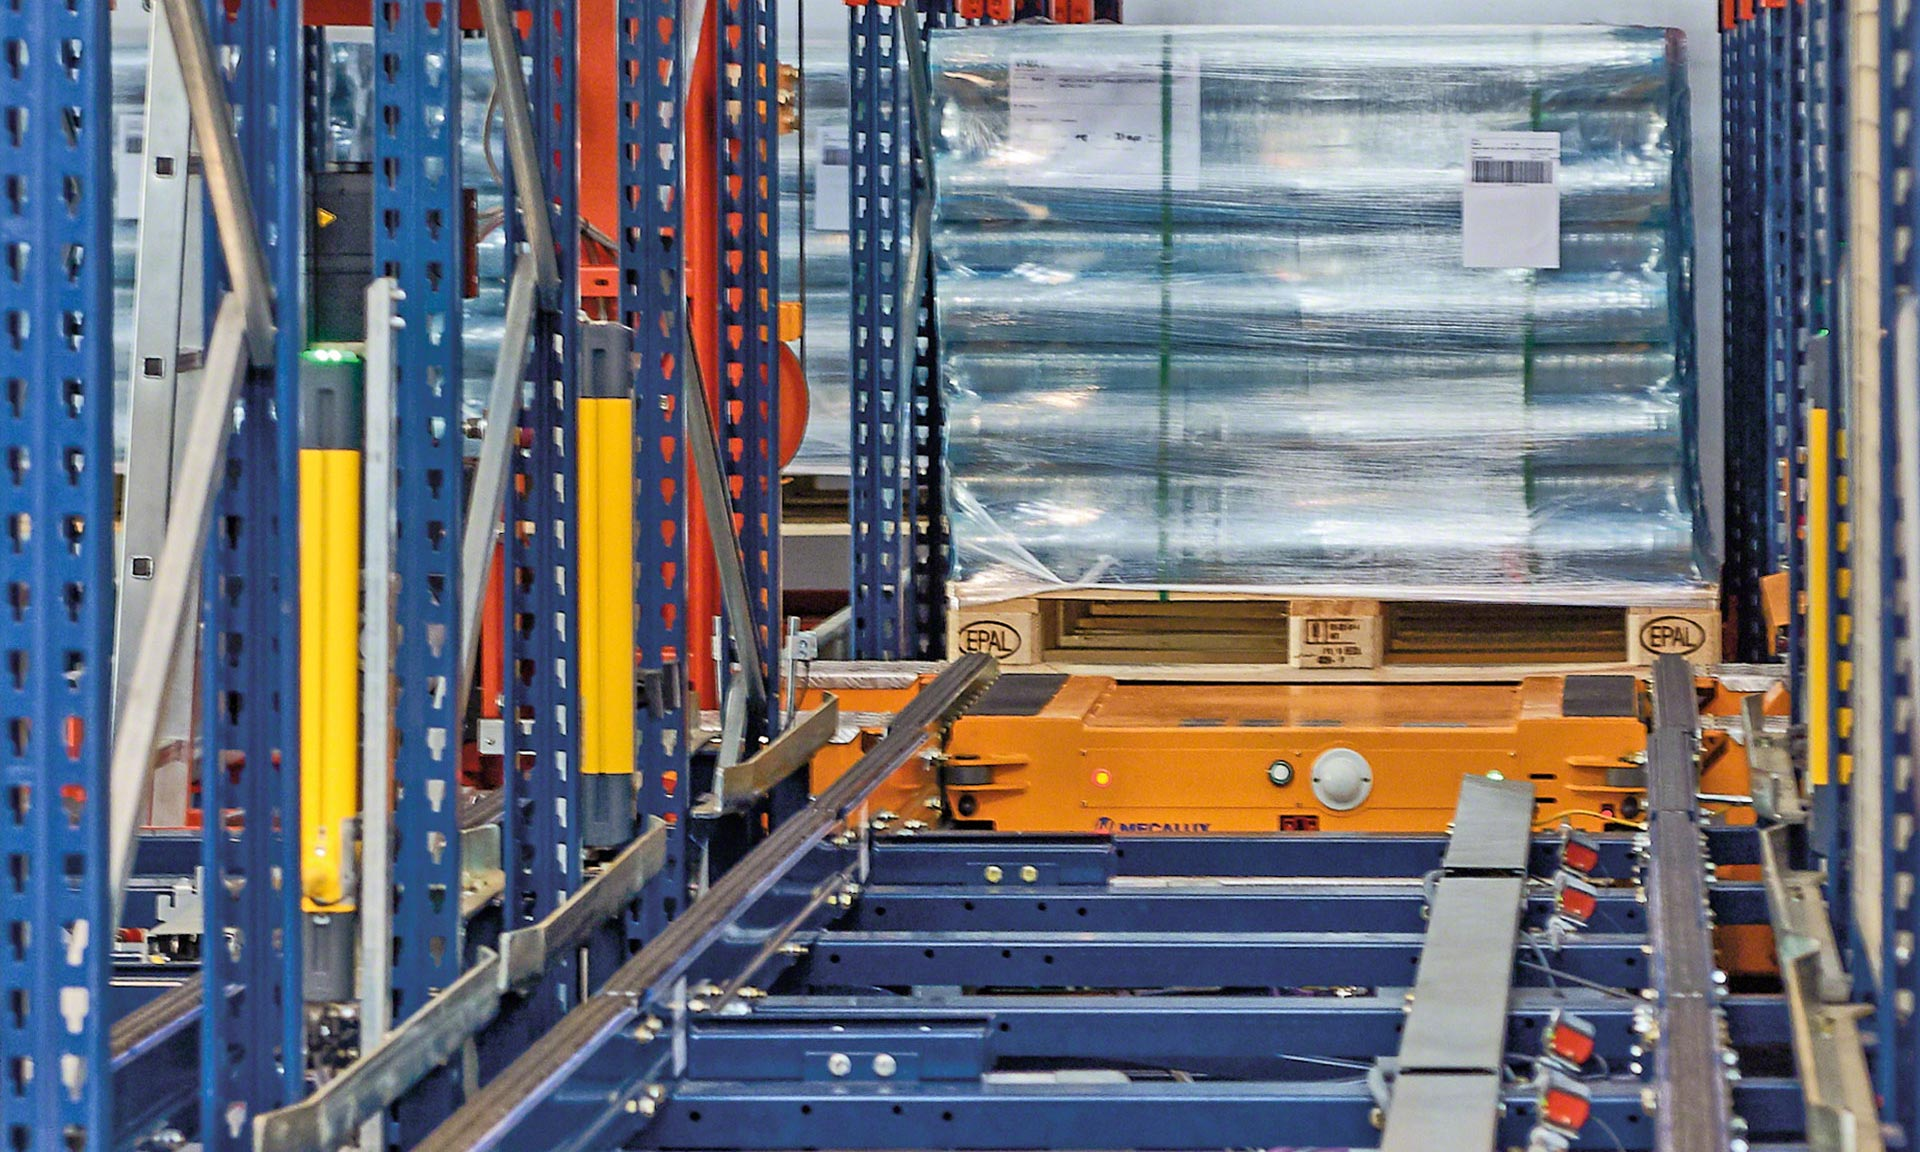 Iberfrasa's new automated warehouse for household and personal care products